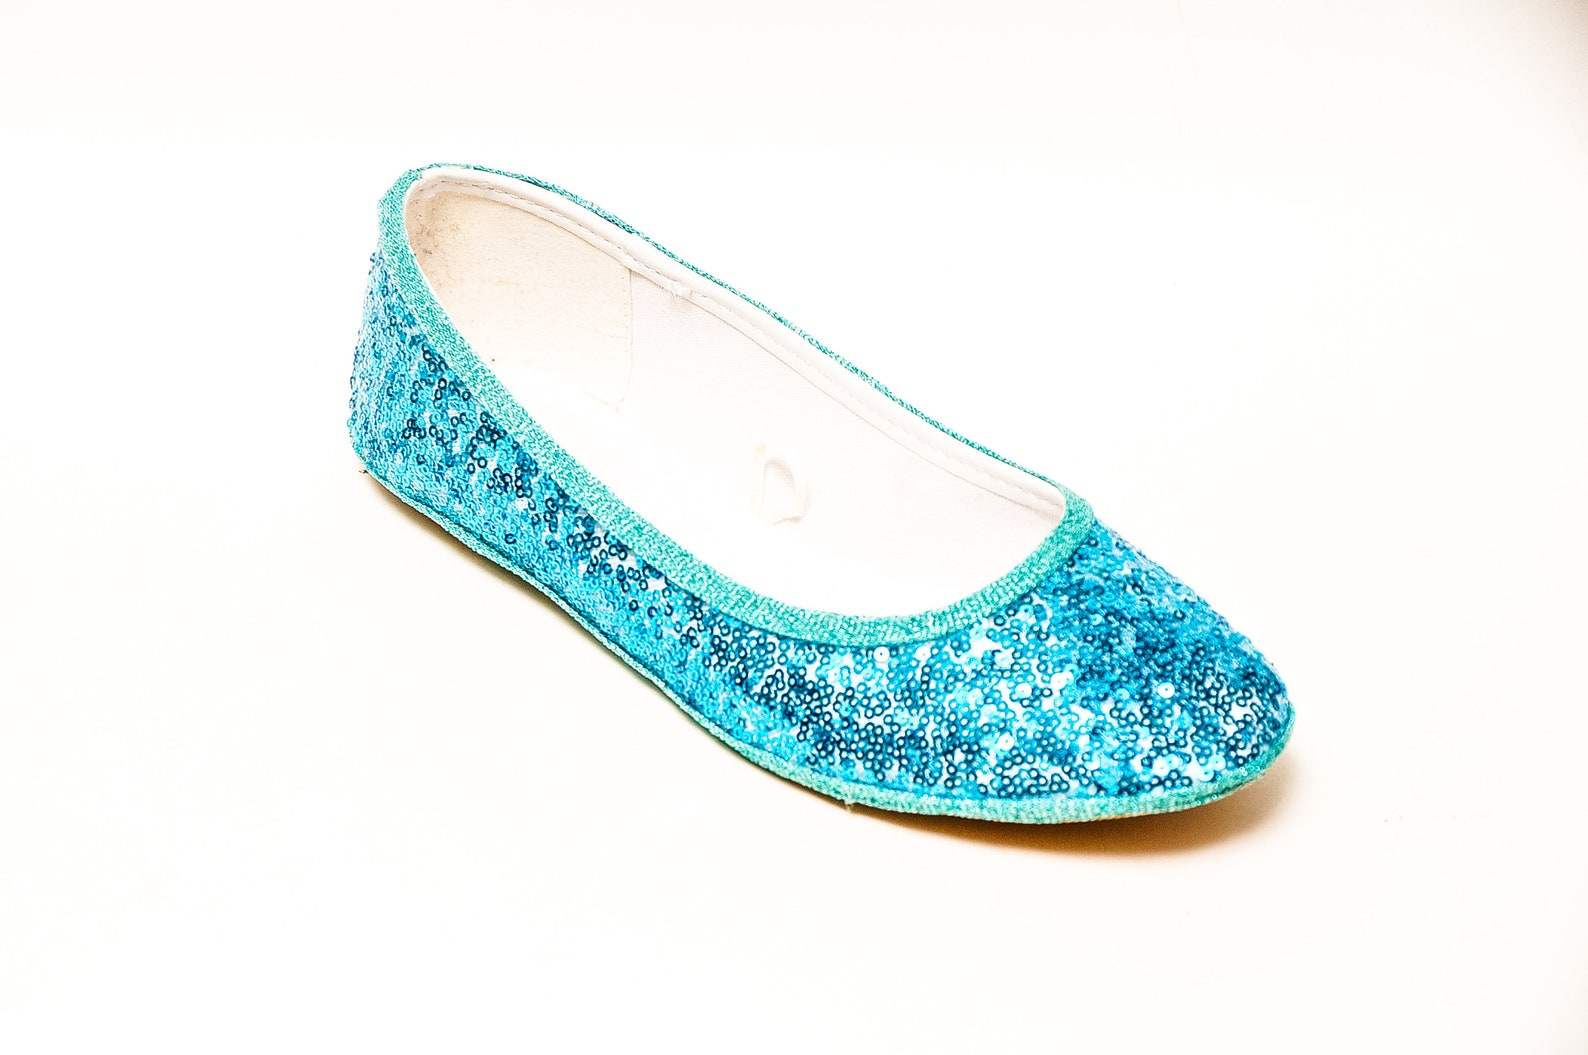 tiny sequin - starlight malibu blue ballet slipper flats shoes